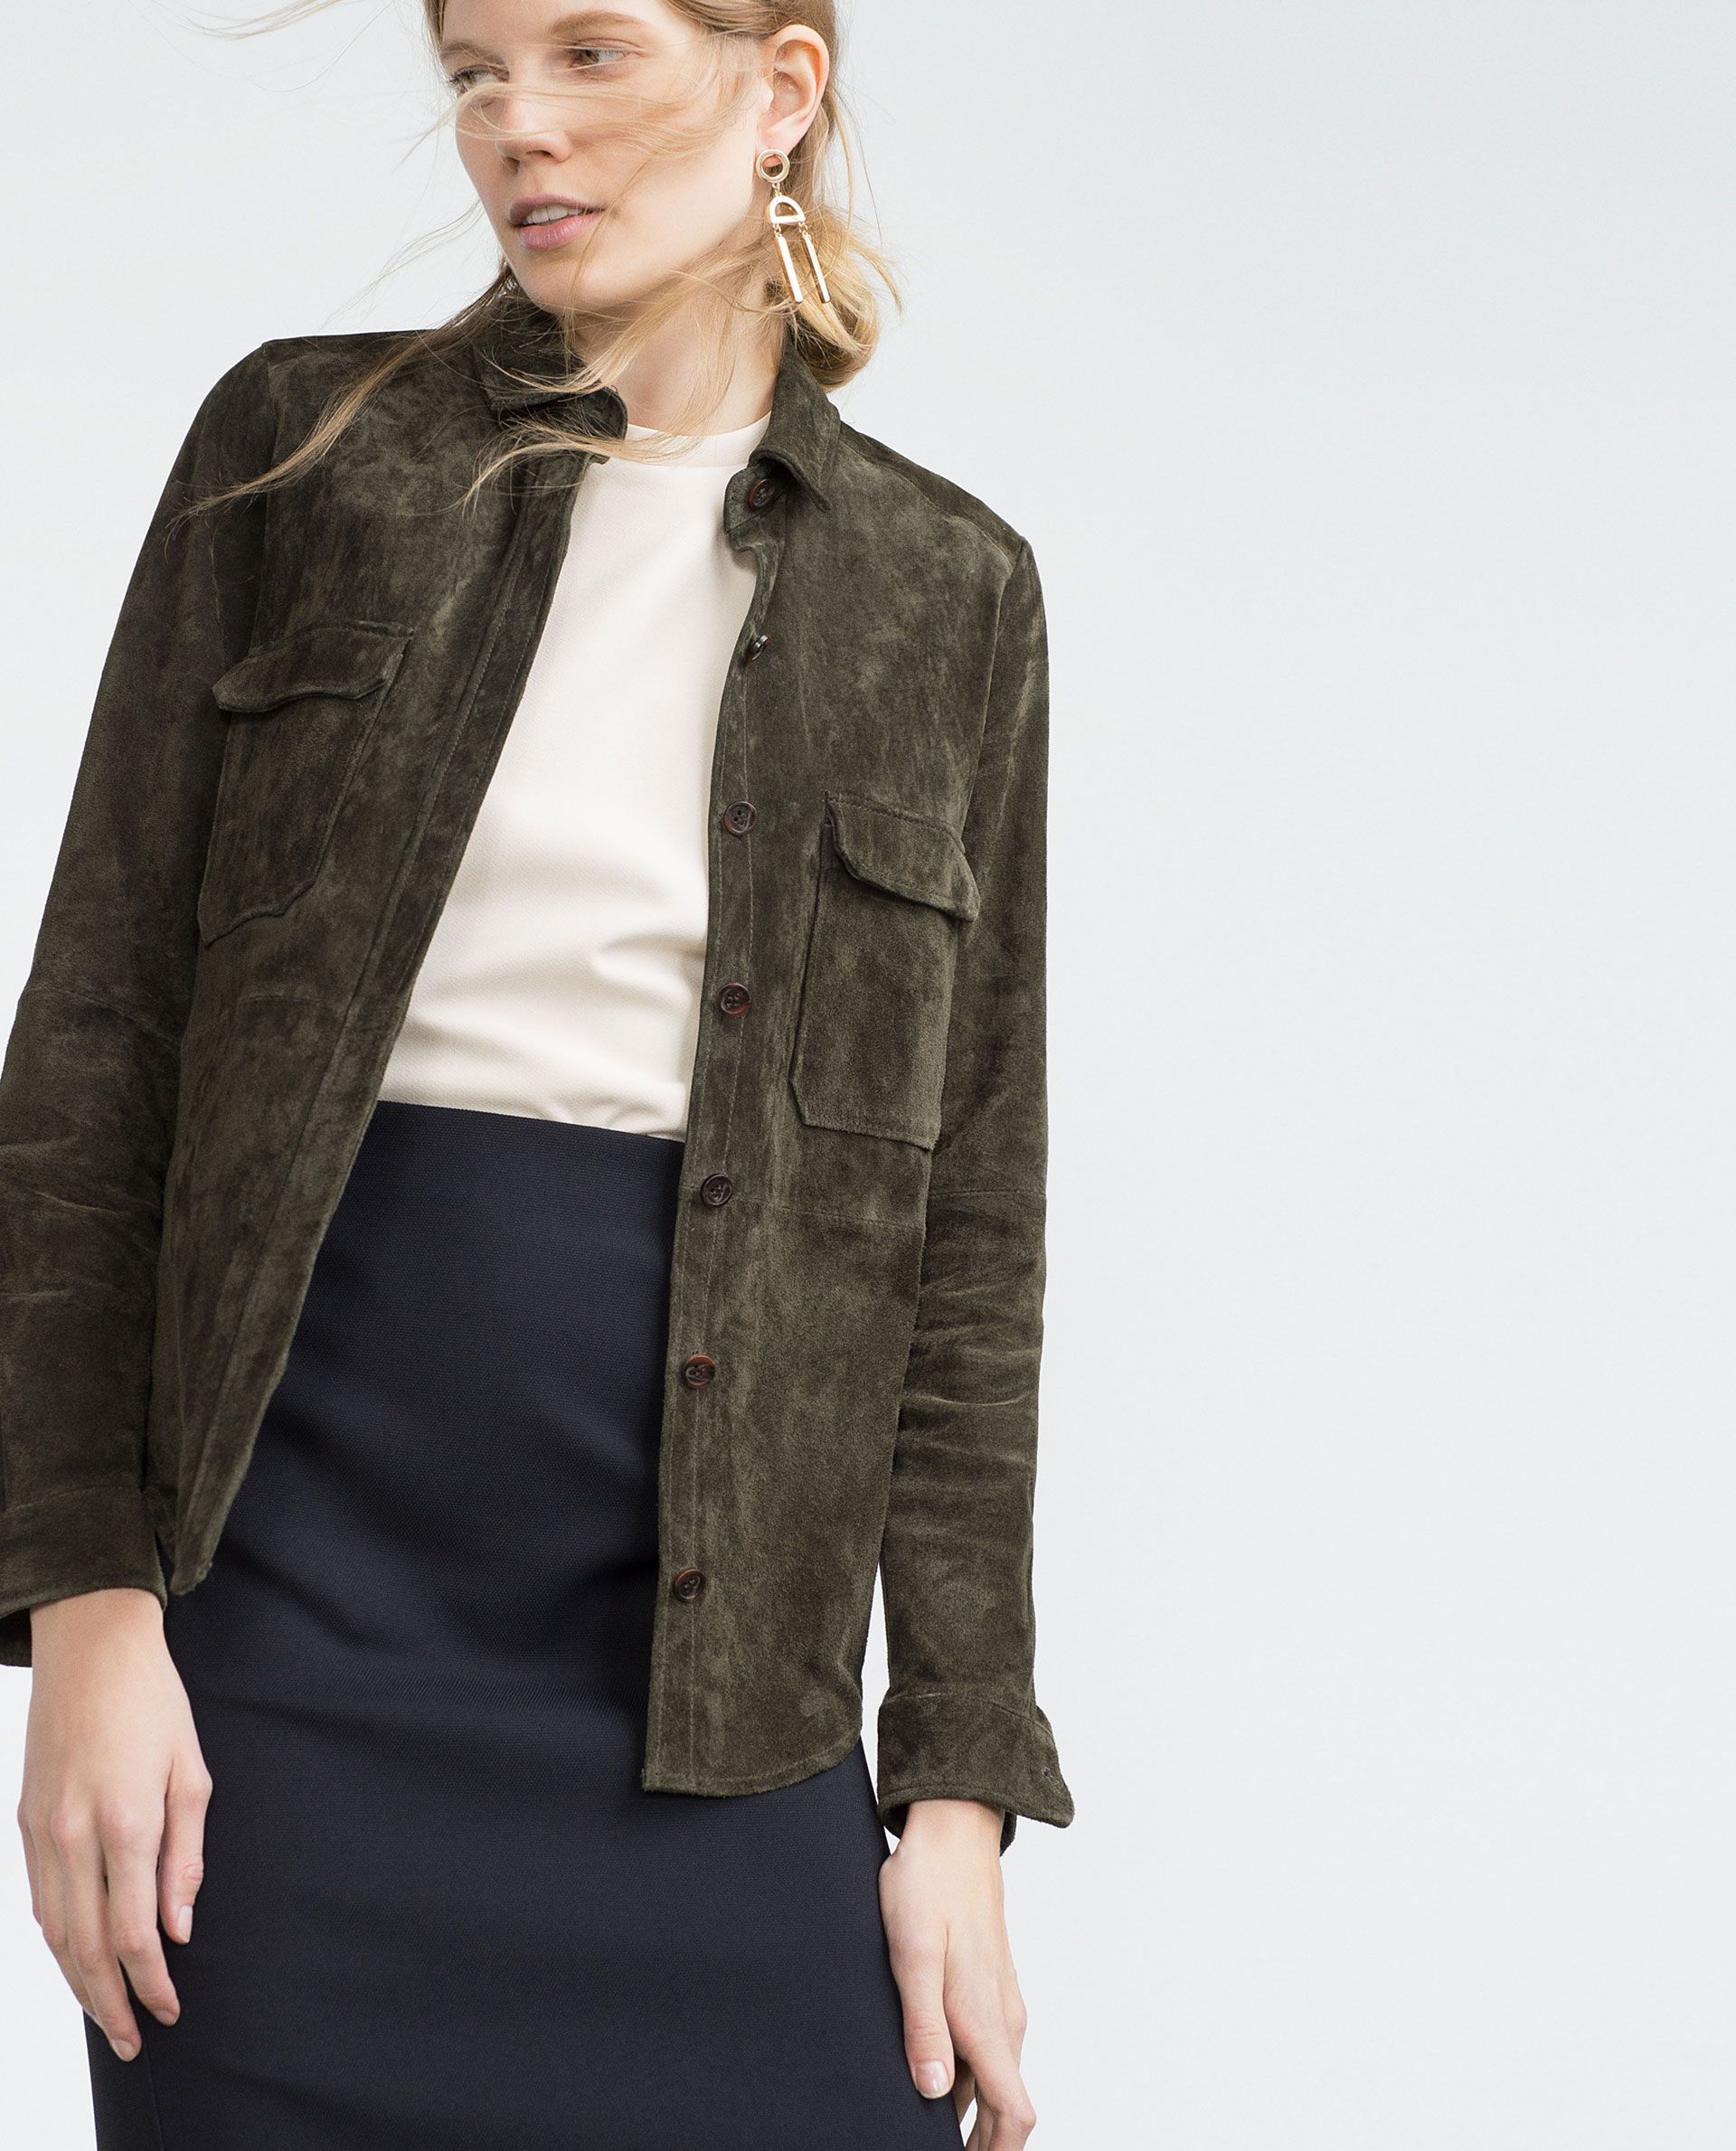 Zara Leather Shirt Suede shirt, Leather shirt, Spy outfit